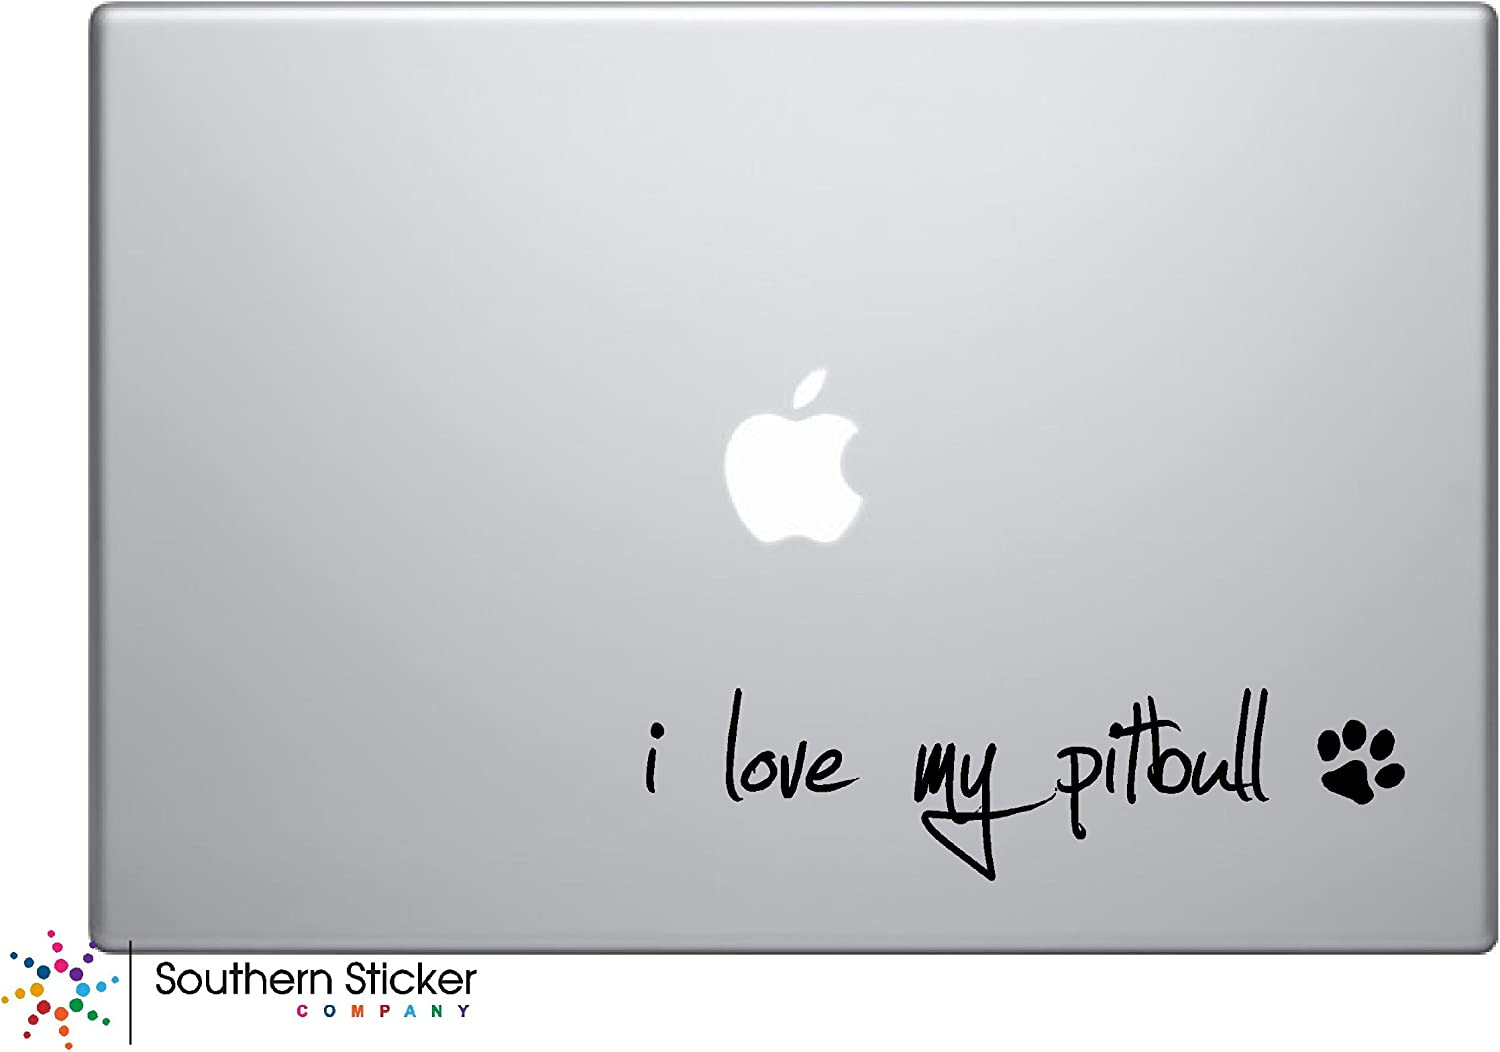 I Love My Pitbull Text Black Symbol Dog Puppy heart paw bone Love Iphone Silhouette Decal Humor Macbook Symbol Iphone Disney Apple Ipad Decal Skin Sticker Laptop